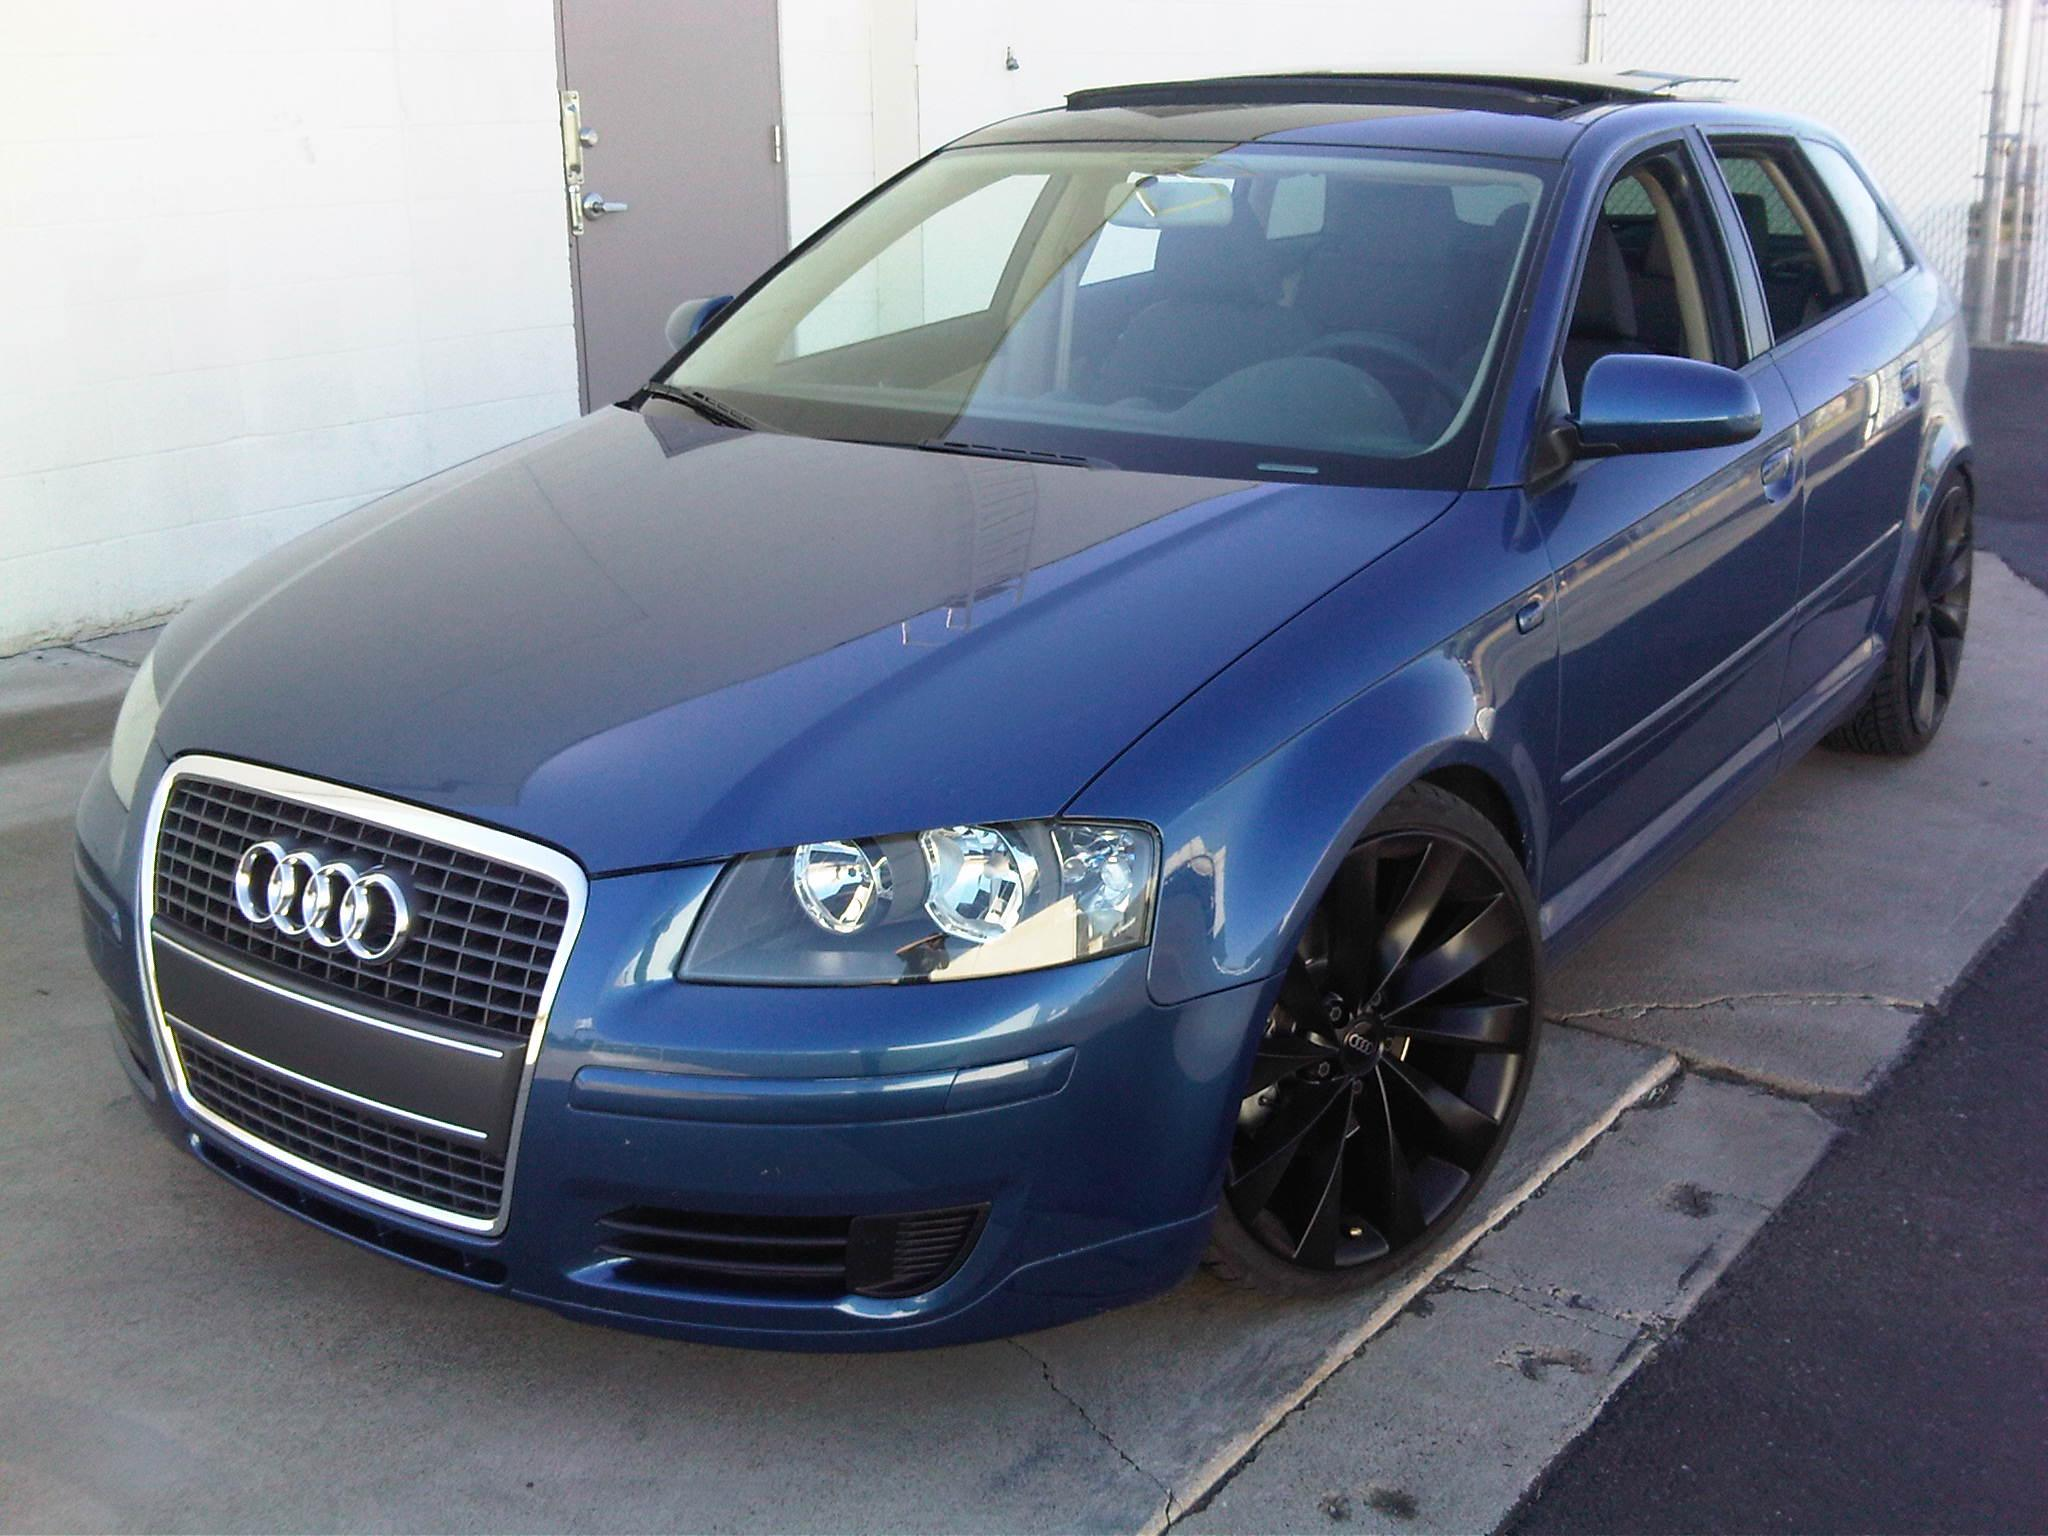 audwagn 2006 audi a32 0t wagon 4d specs photos modification info at cardomain. Black Bedroom Furniture Sets. Home Design Ideas